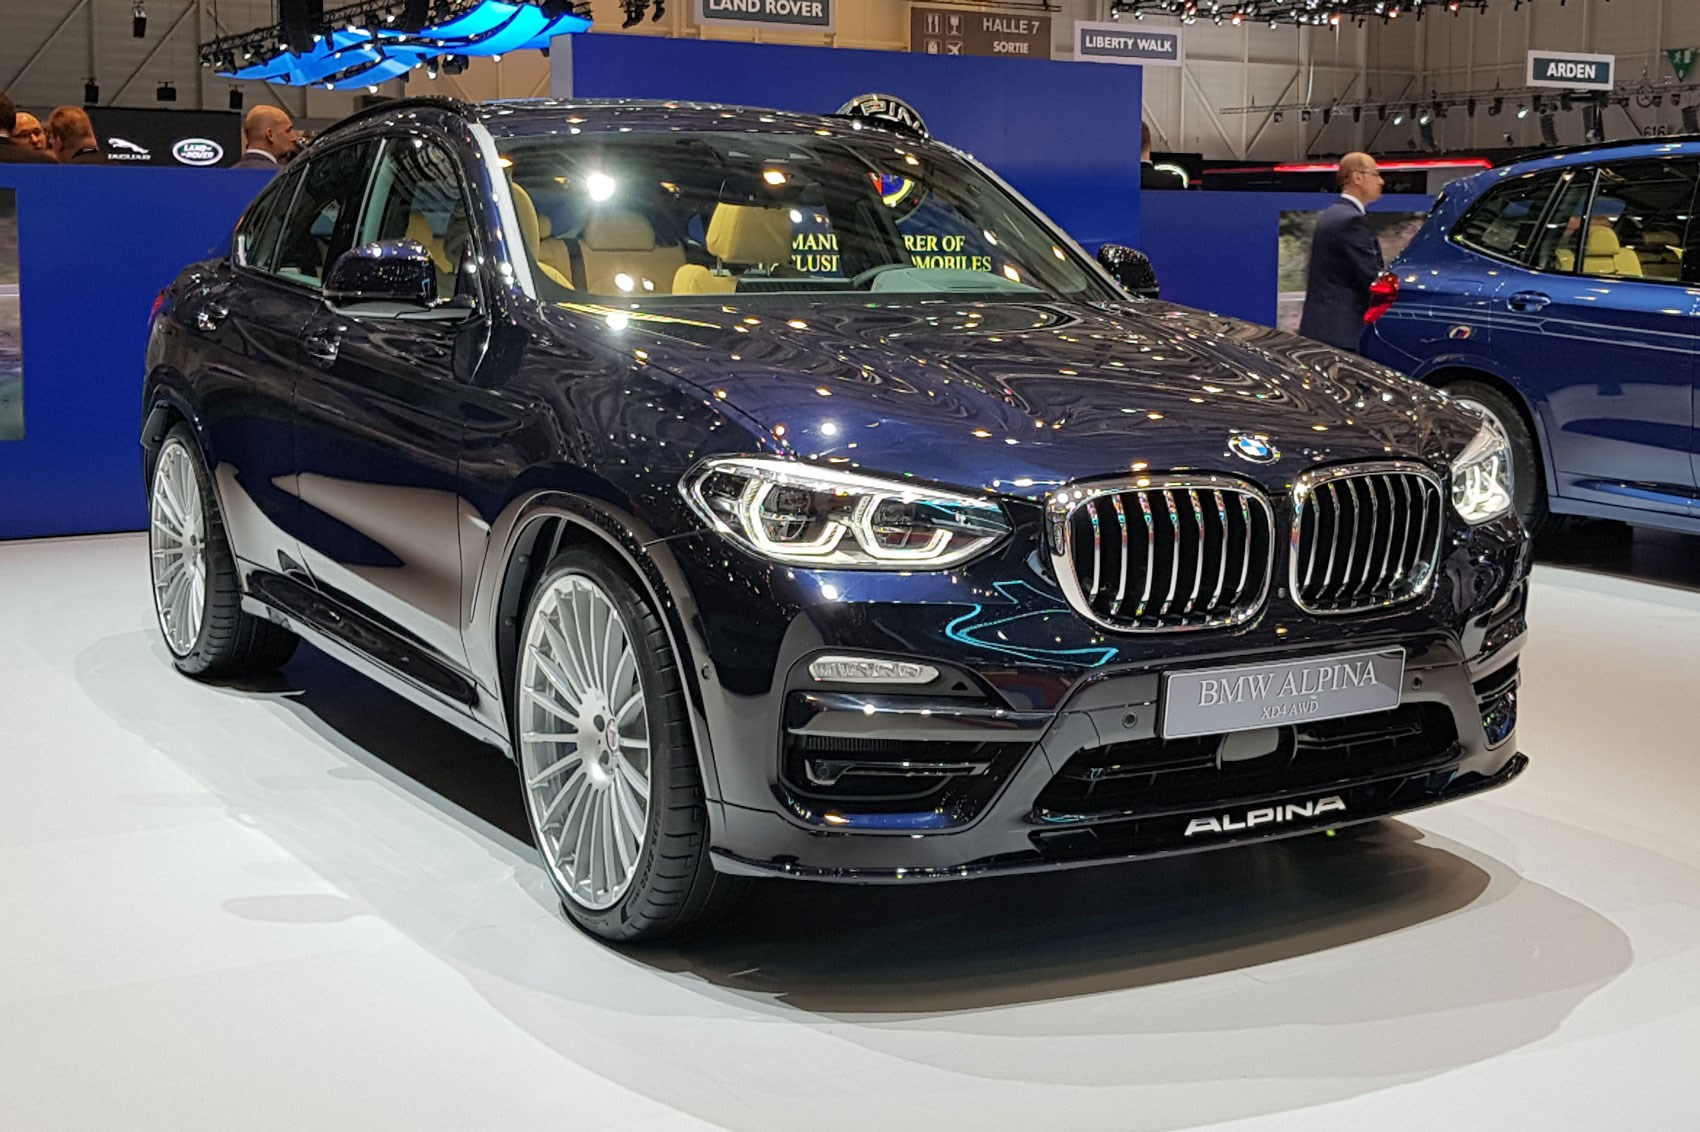 Alpina Revs Up BMW SUVs With New XD And XD CAR Magazine - Bmw alpina price range